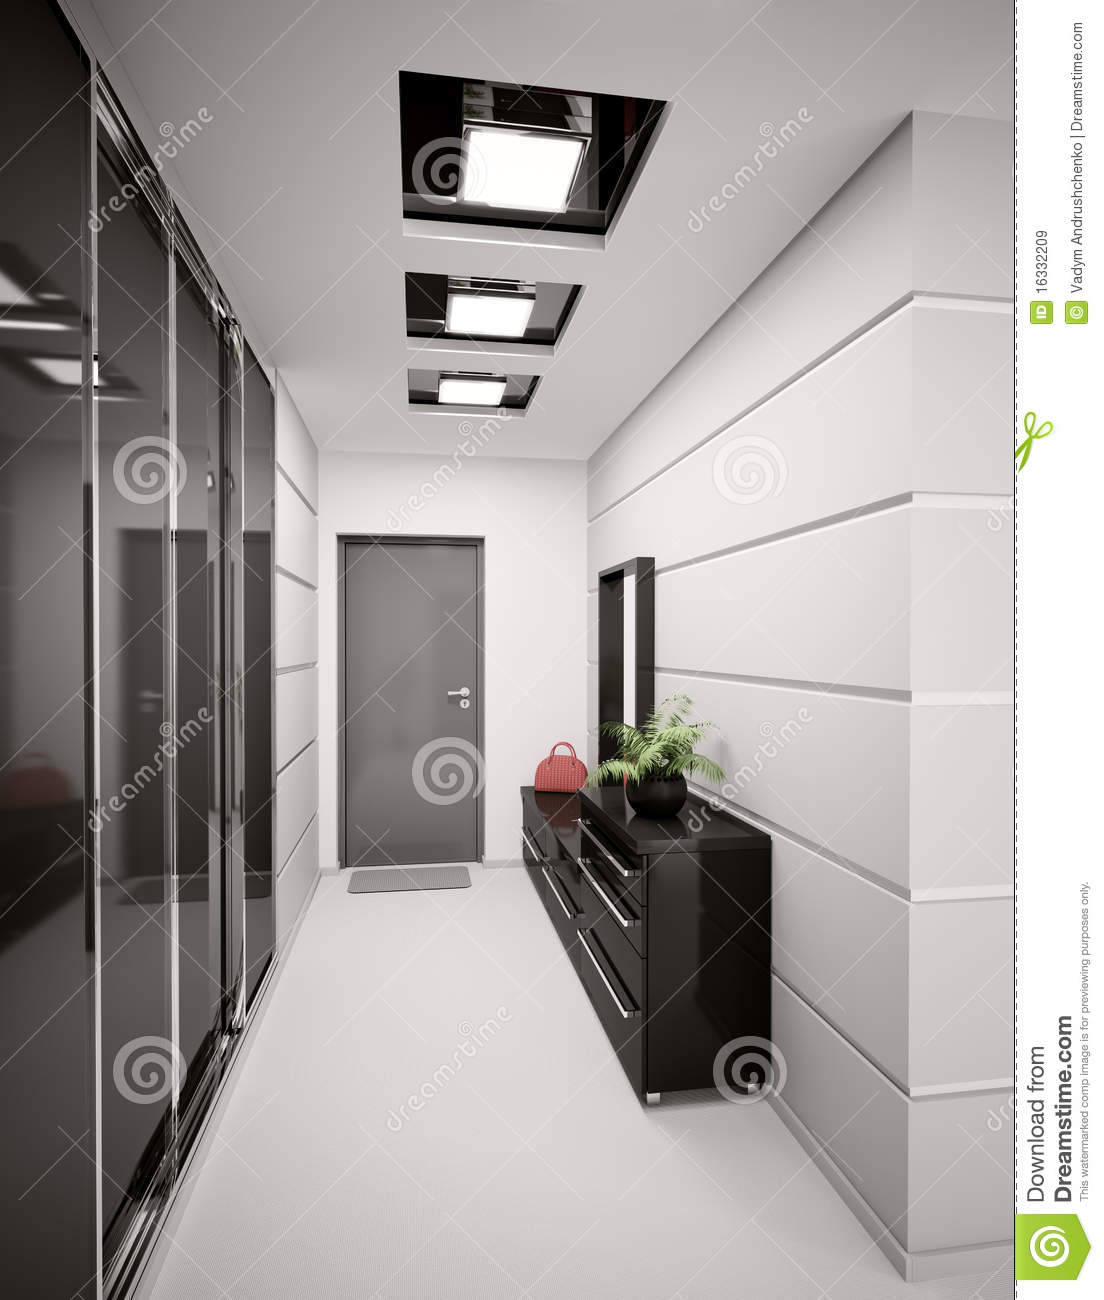 Interior of modern entrance hall 3d render stock for Modern entrance hall